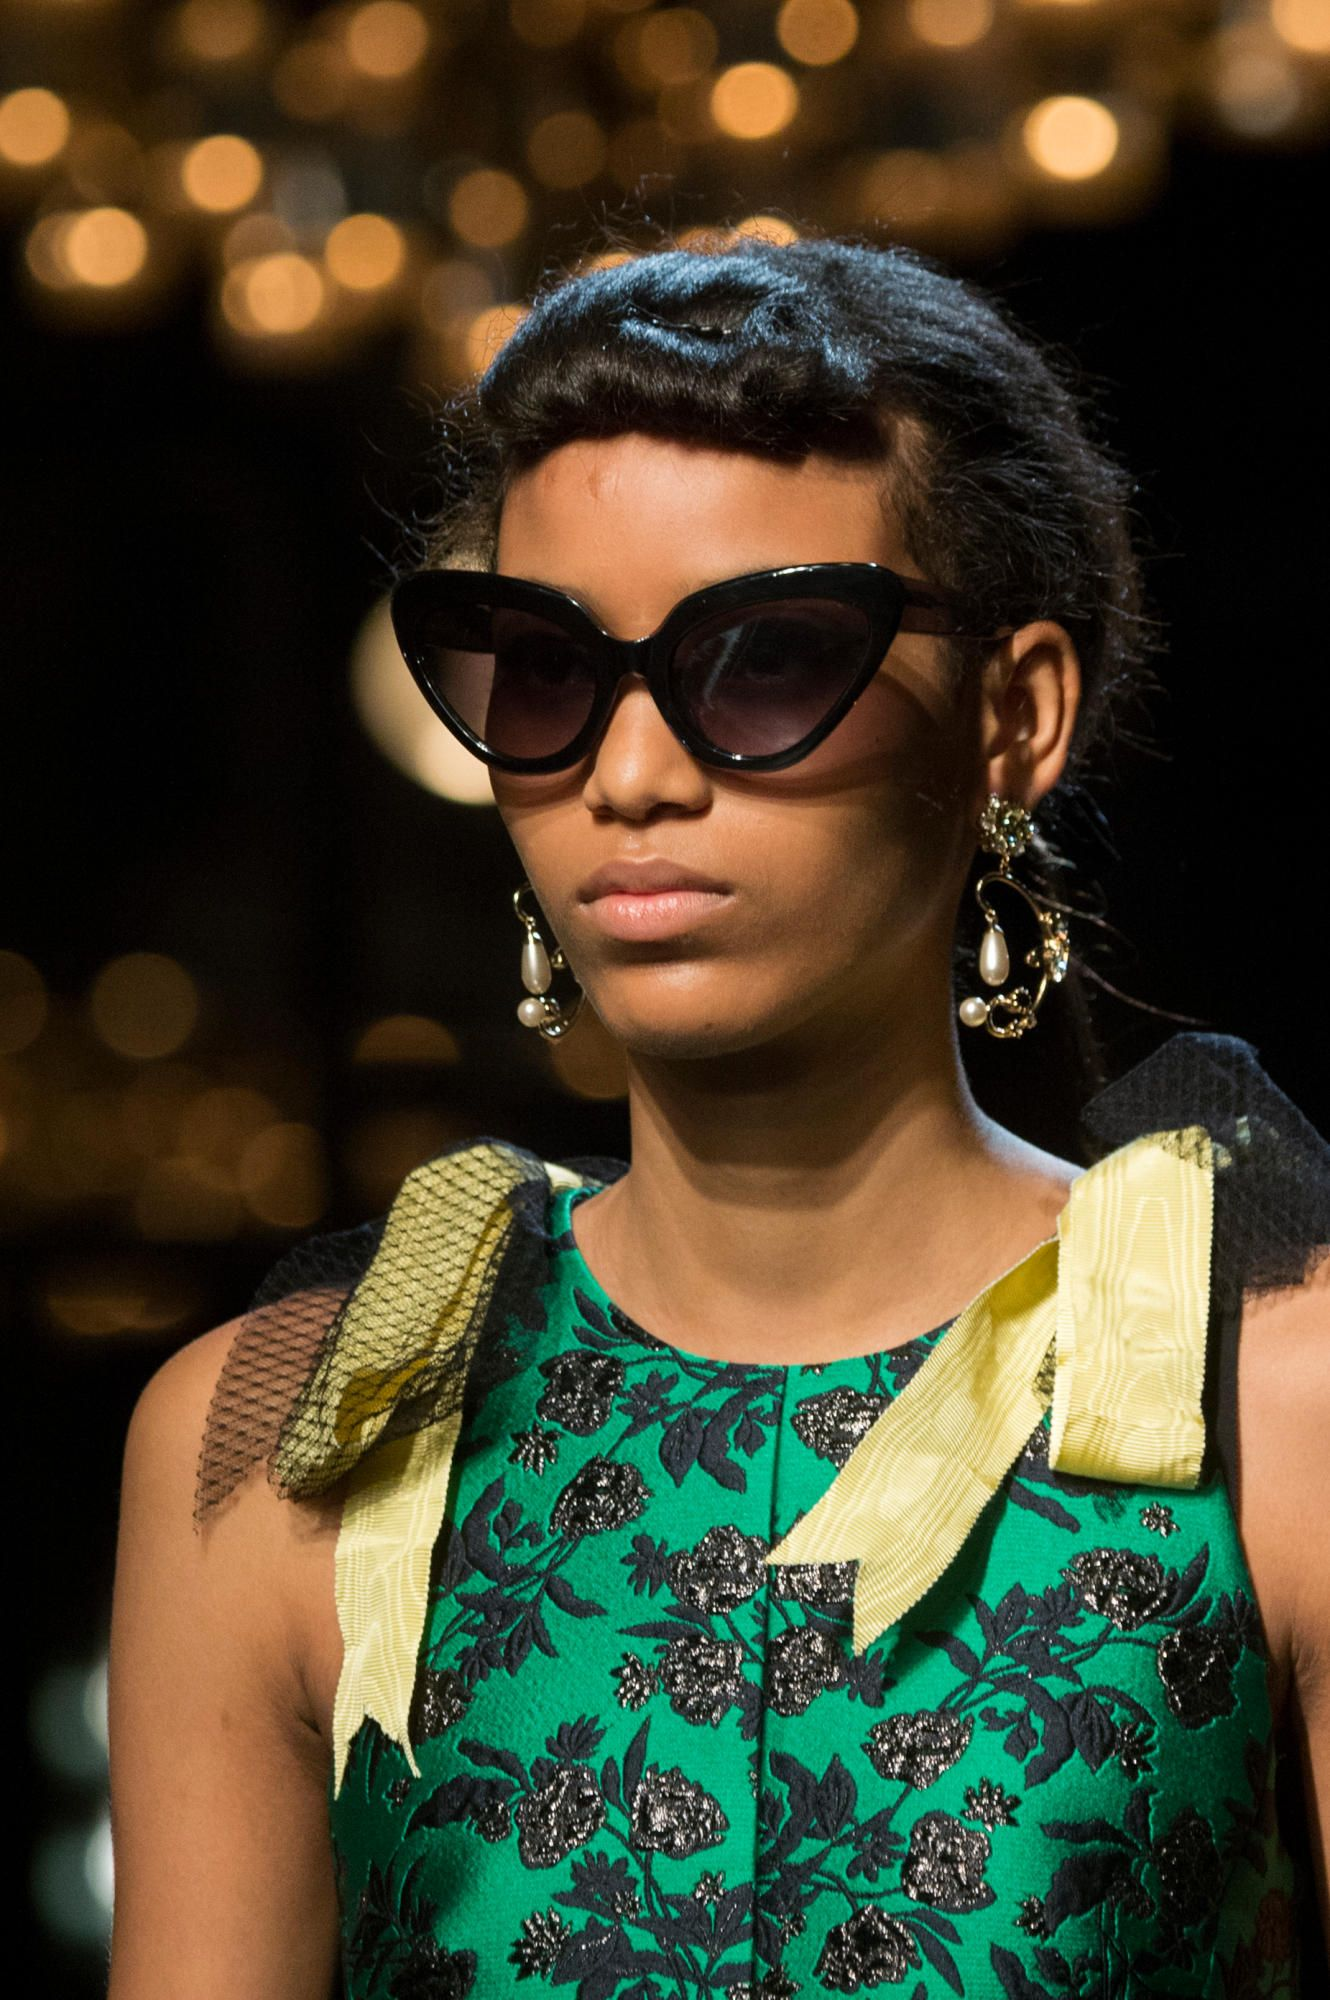 c43f93f758aa A look from Erdem s Spring 2018 collection. Photo  Imaxtree. A look from  Erdem s Spring 2018 collection. Photo  Imaxtree Trending Sunglasses